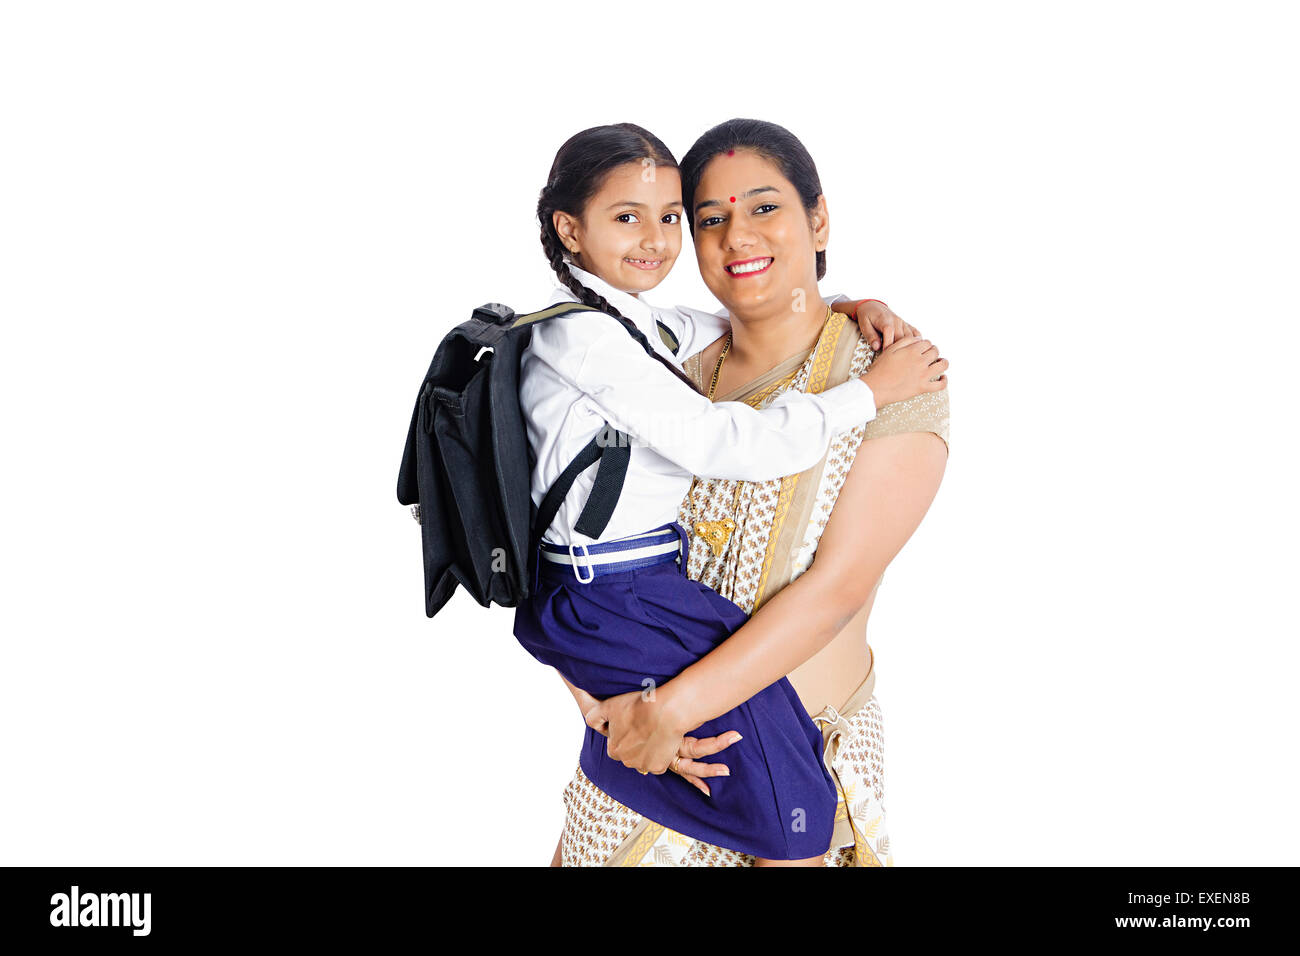 2 Indian Rural Mother With Daughter Caring Stock Photo 85146555